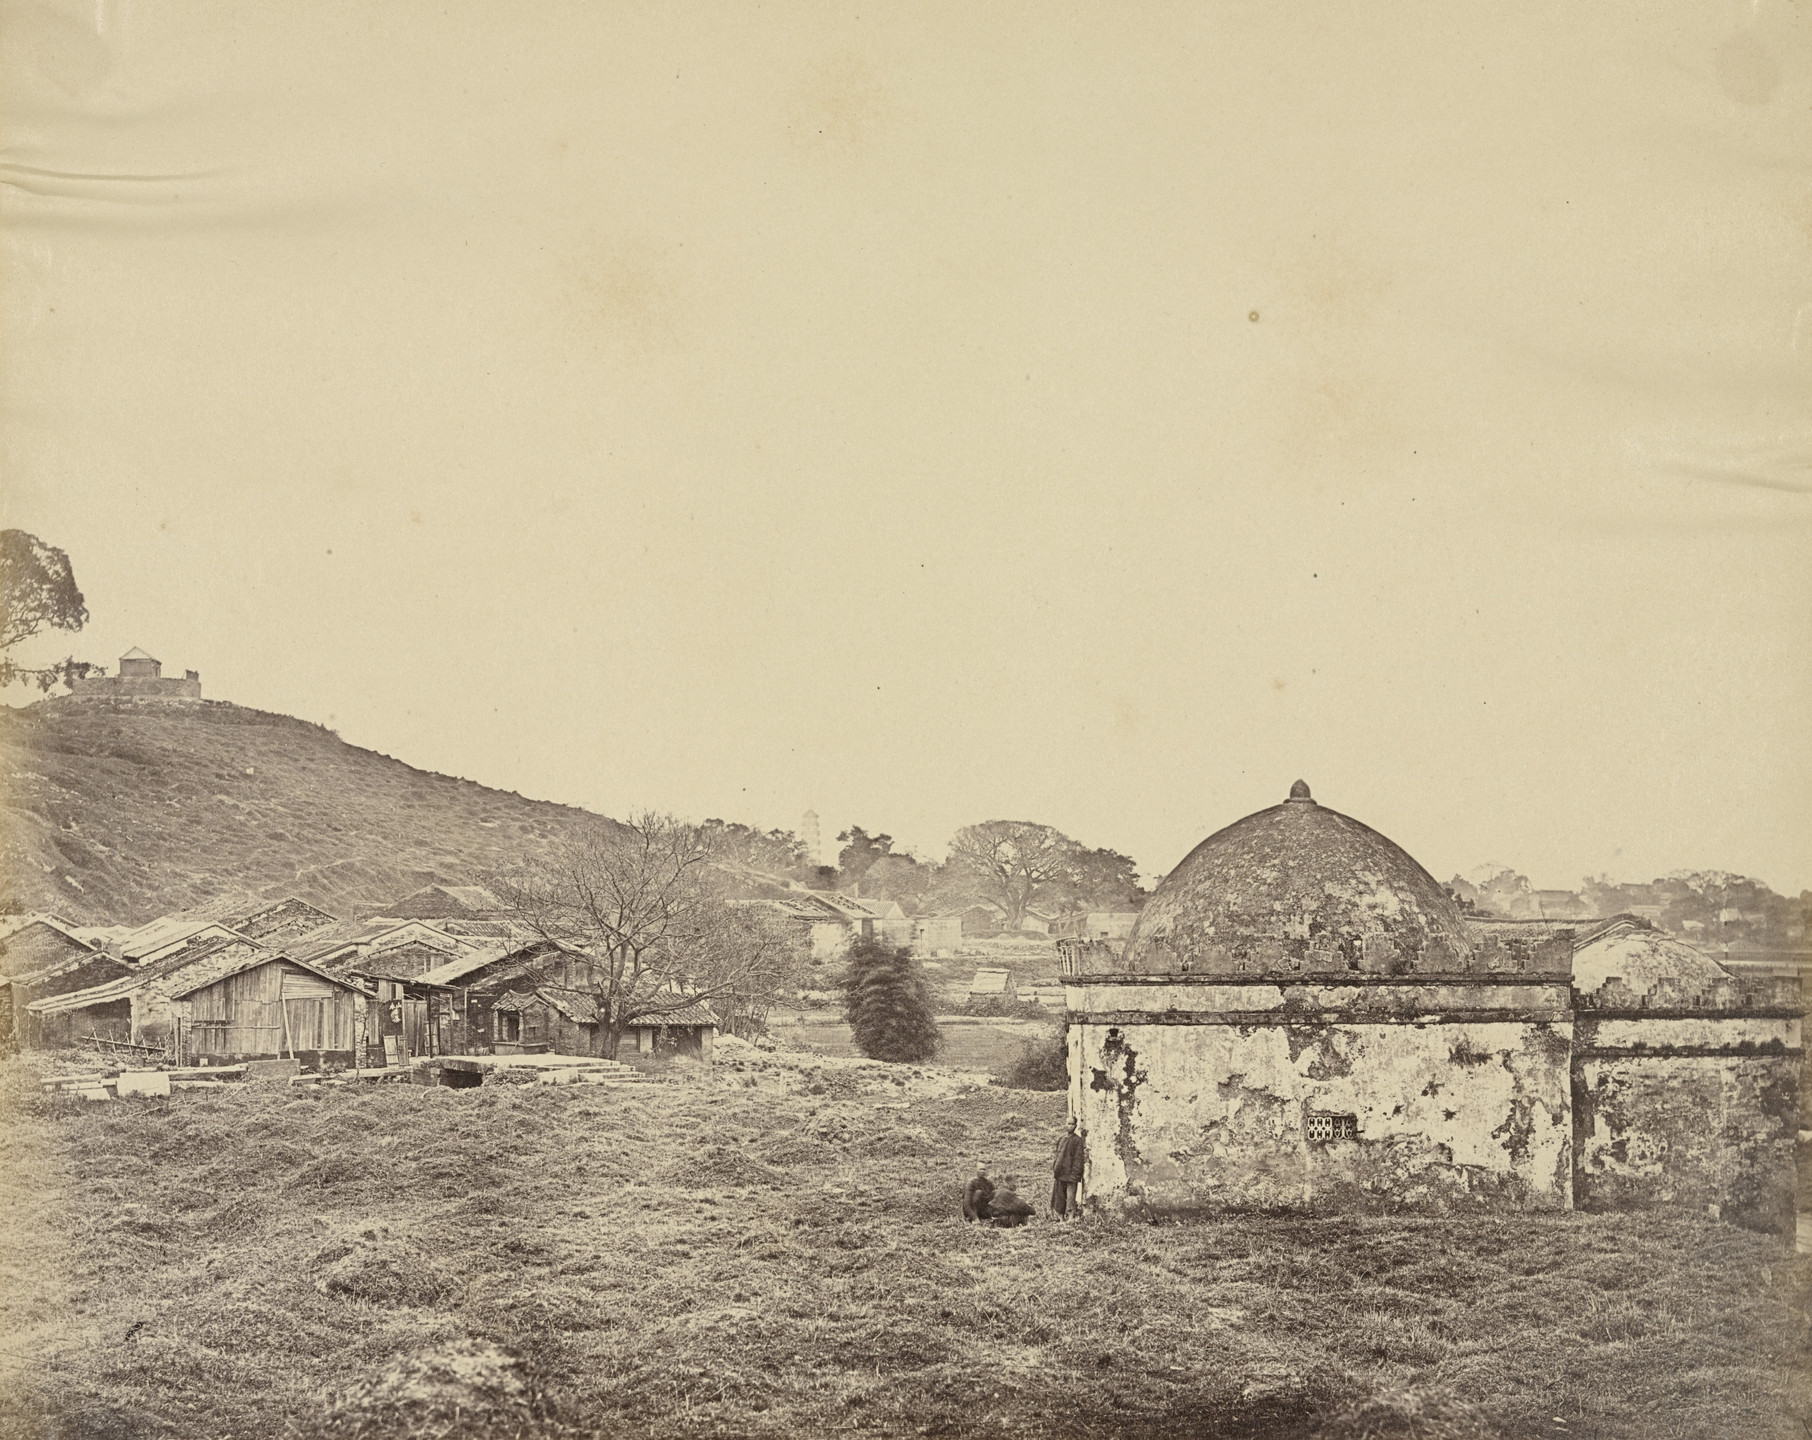 Felice Beato. Mohammedan Temple, Near Canton. April 1860